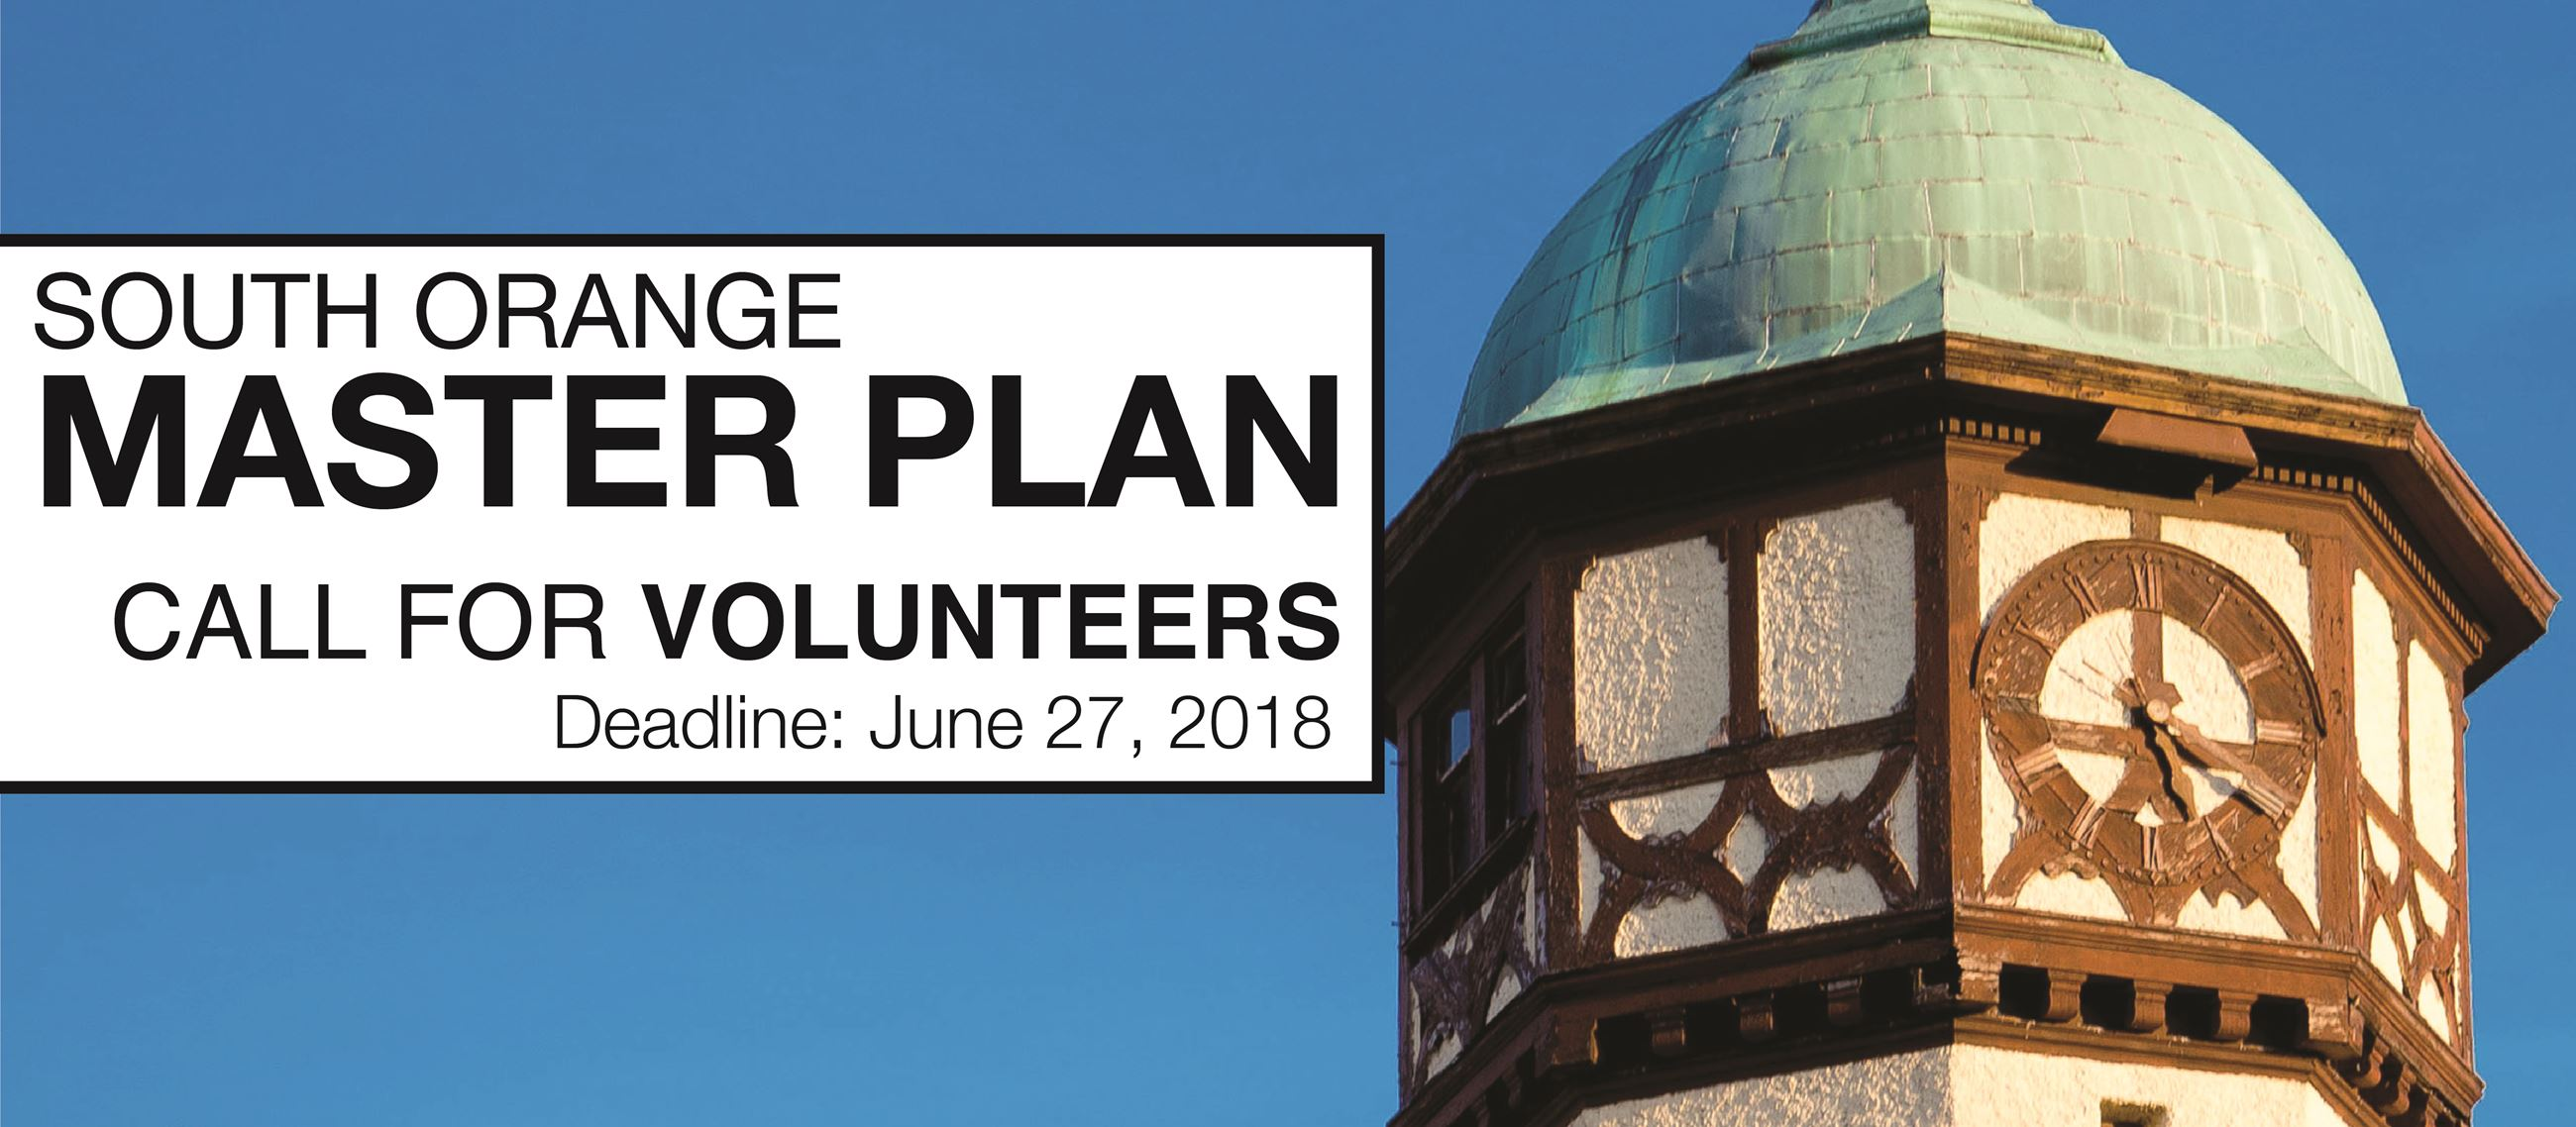 South Orange Master Plan